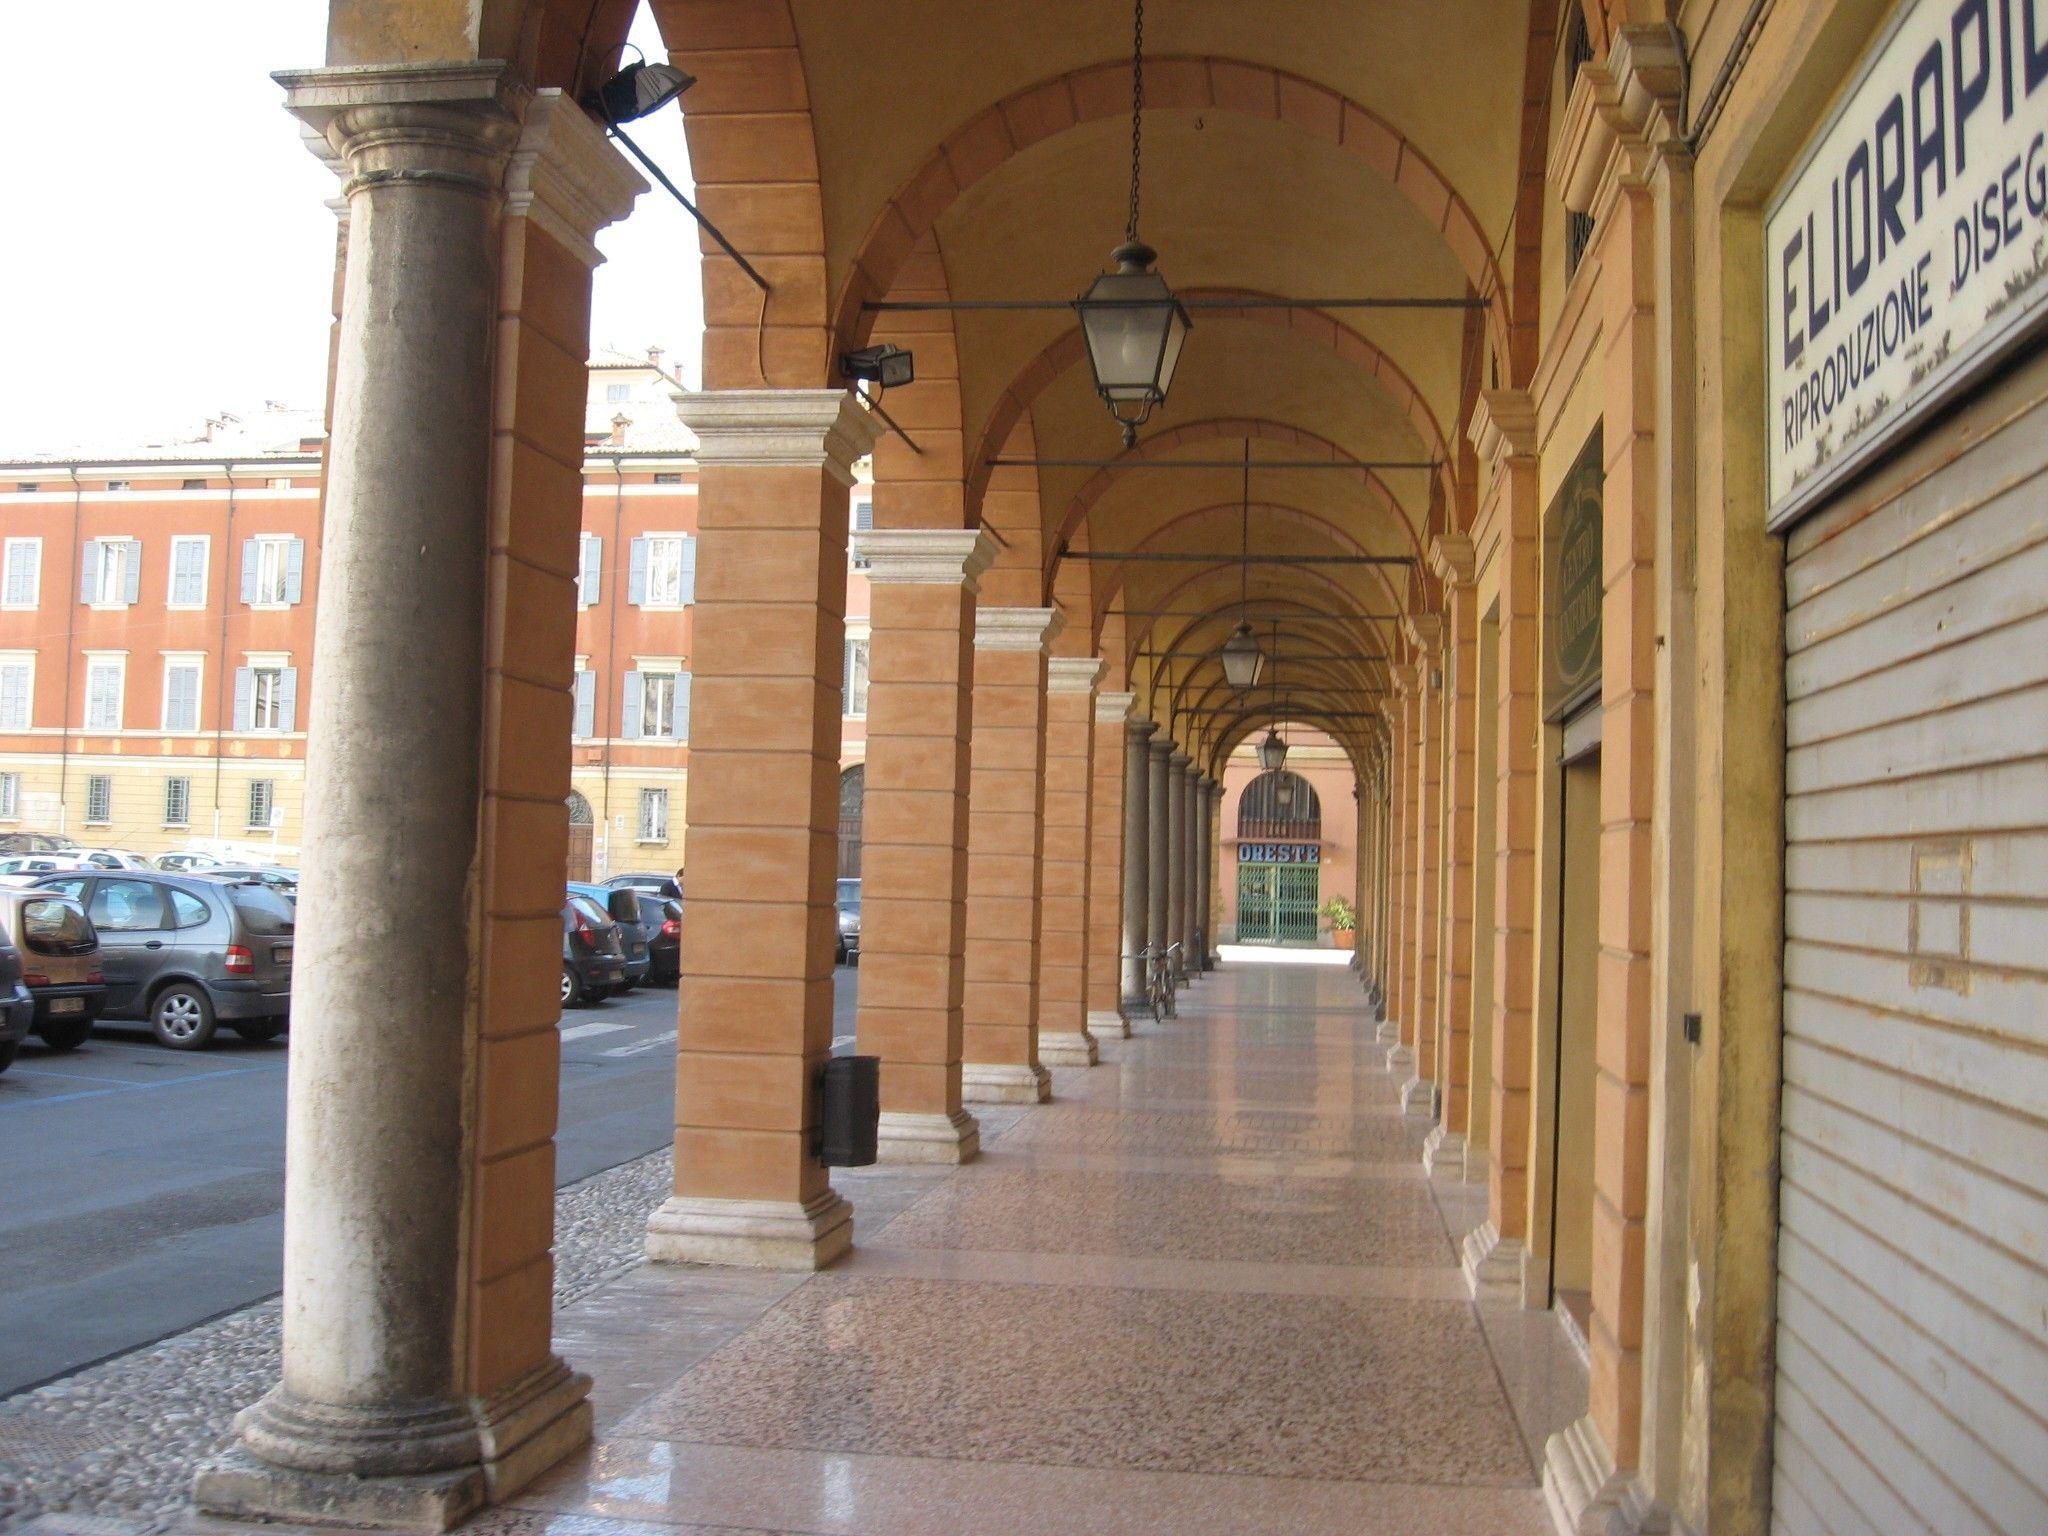 Bologna streets wallpapers